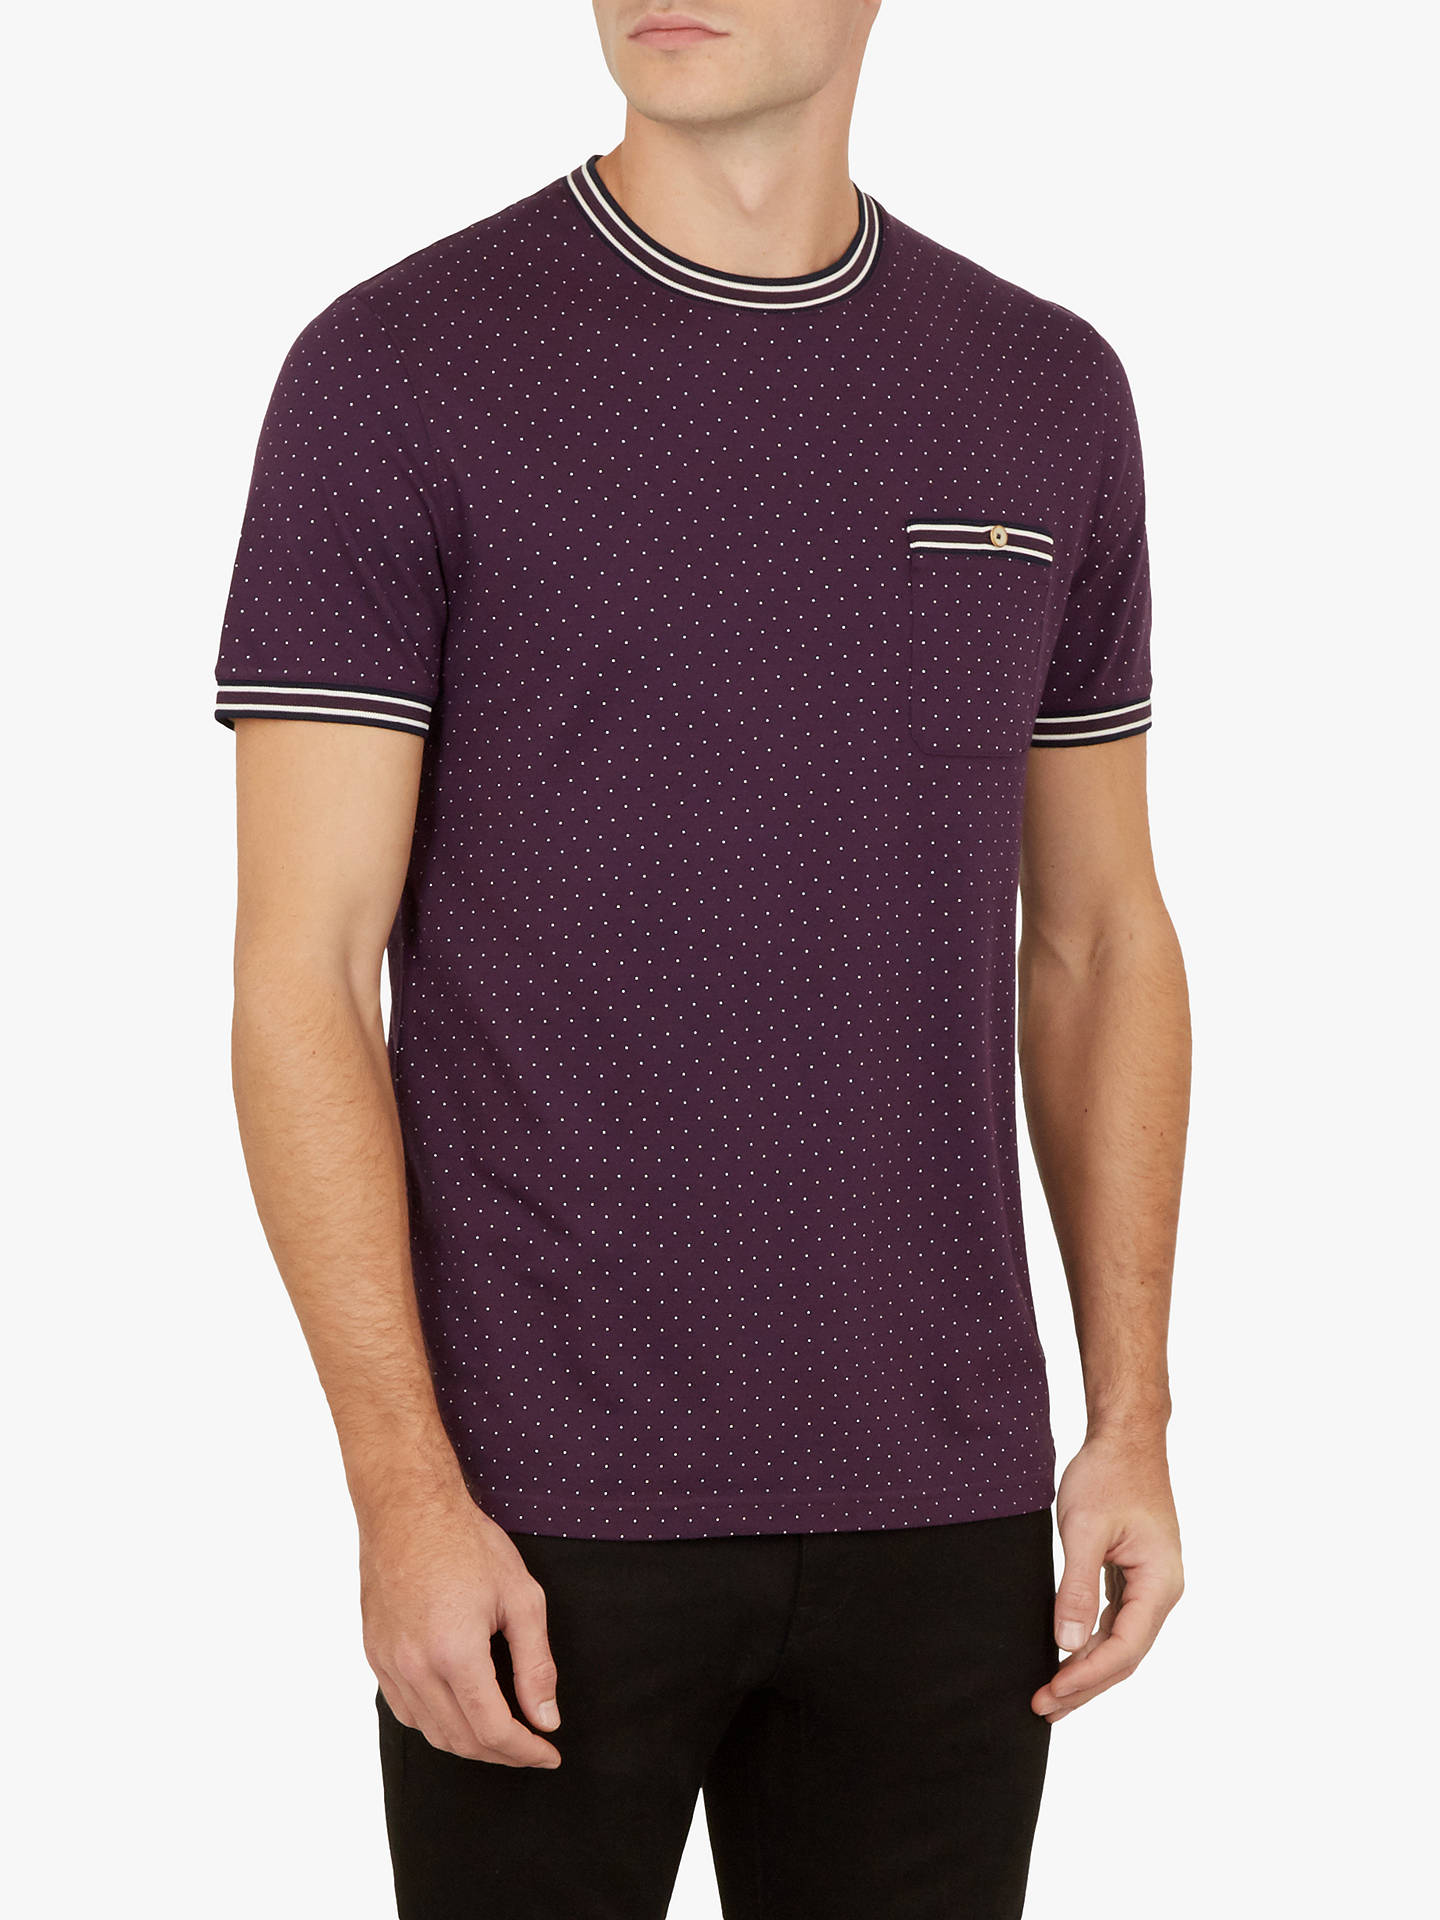 BuyTed Baker Glaad Print T-Shirt, Purple, M Online at johnlewis.com